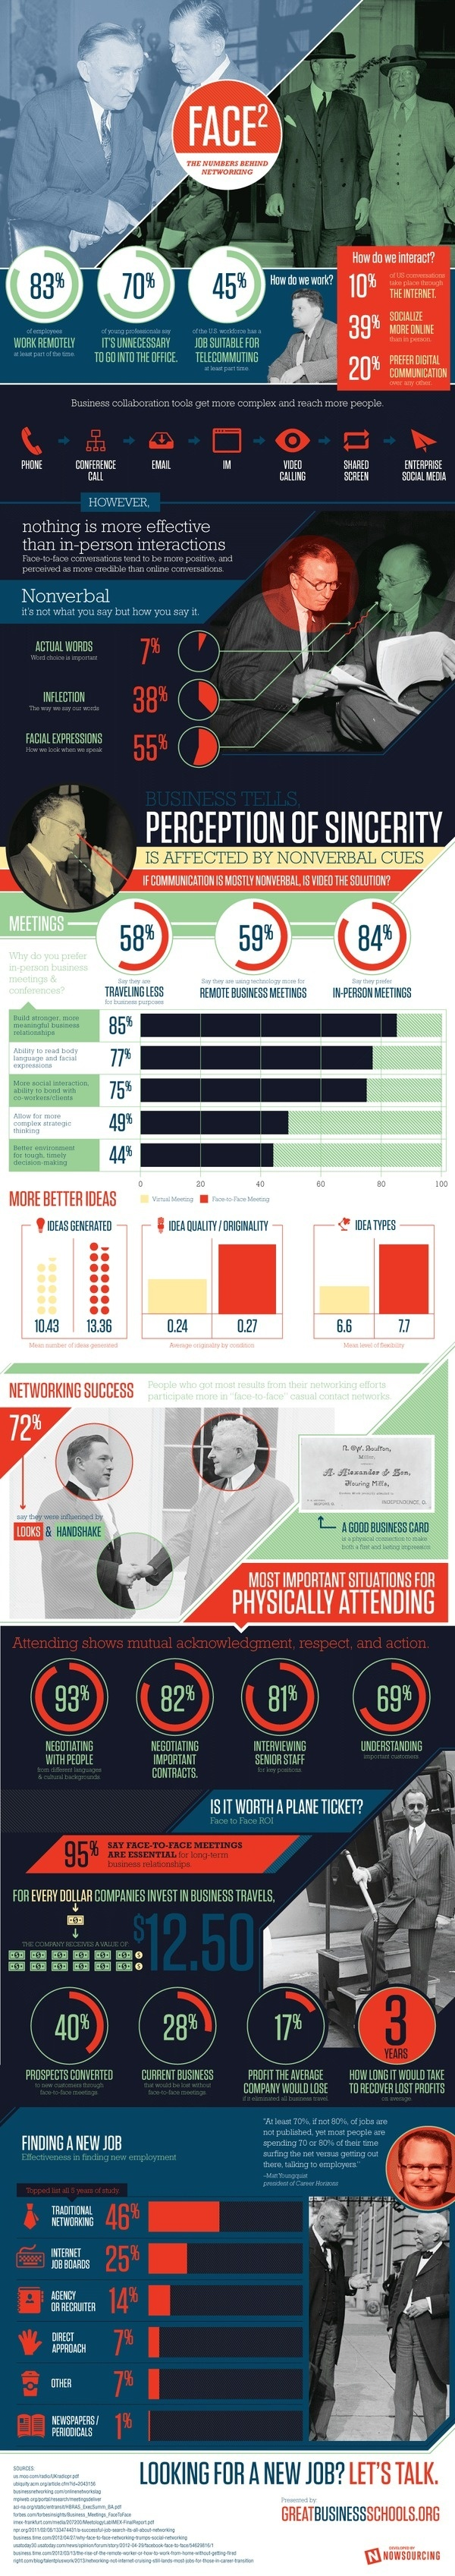 Face to Face Networking #infographic #business